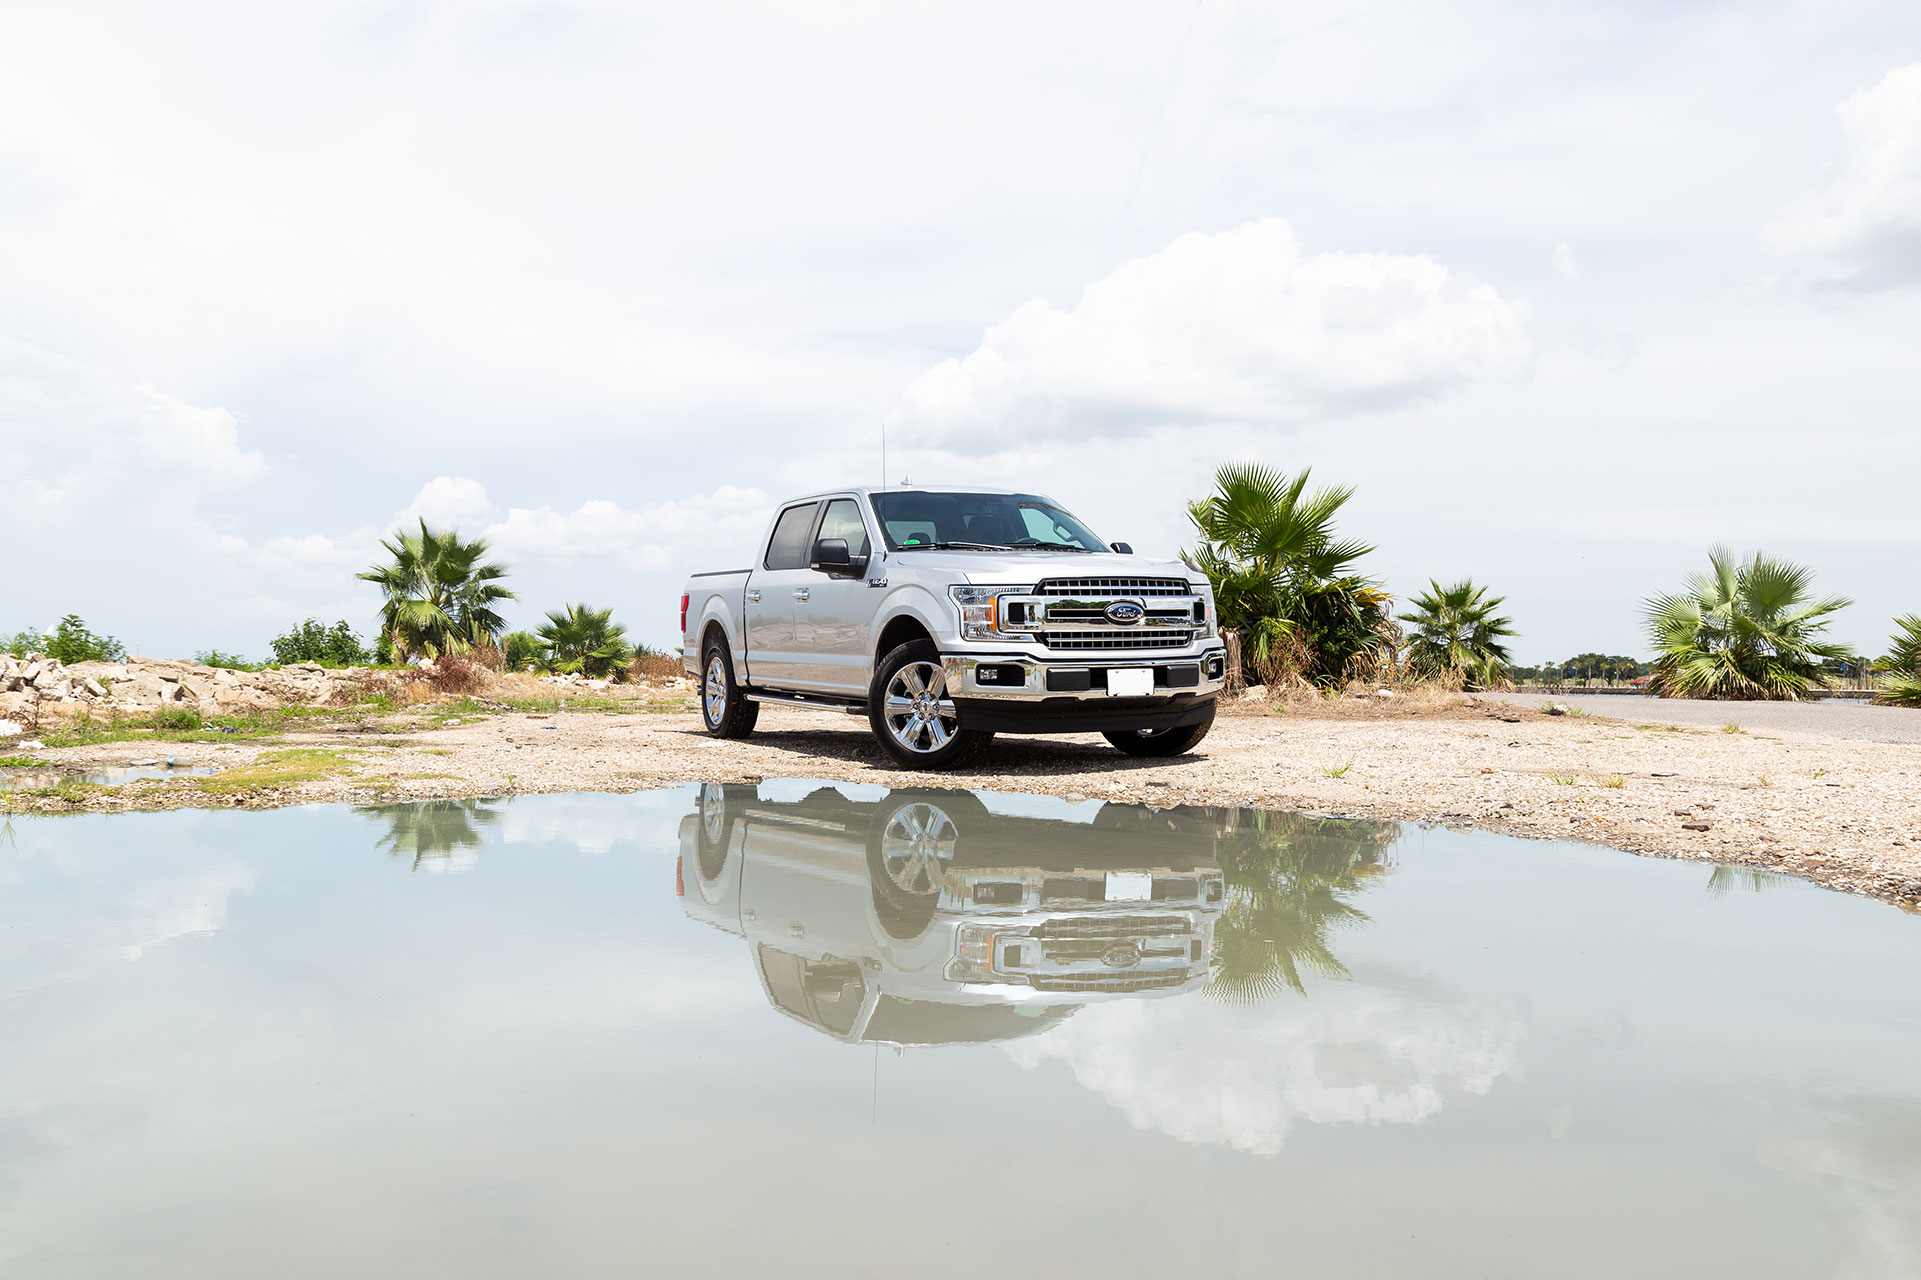 Built Ford Tough | Jack Parrish Photography for Southern Quality Ford